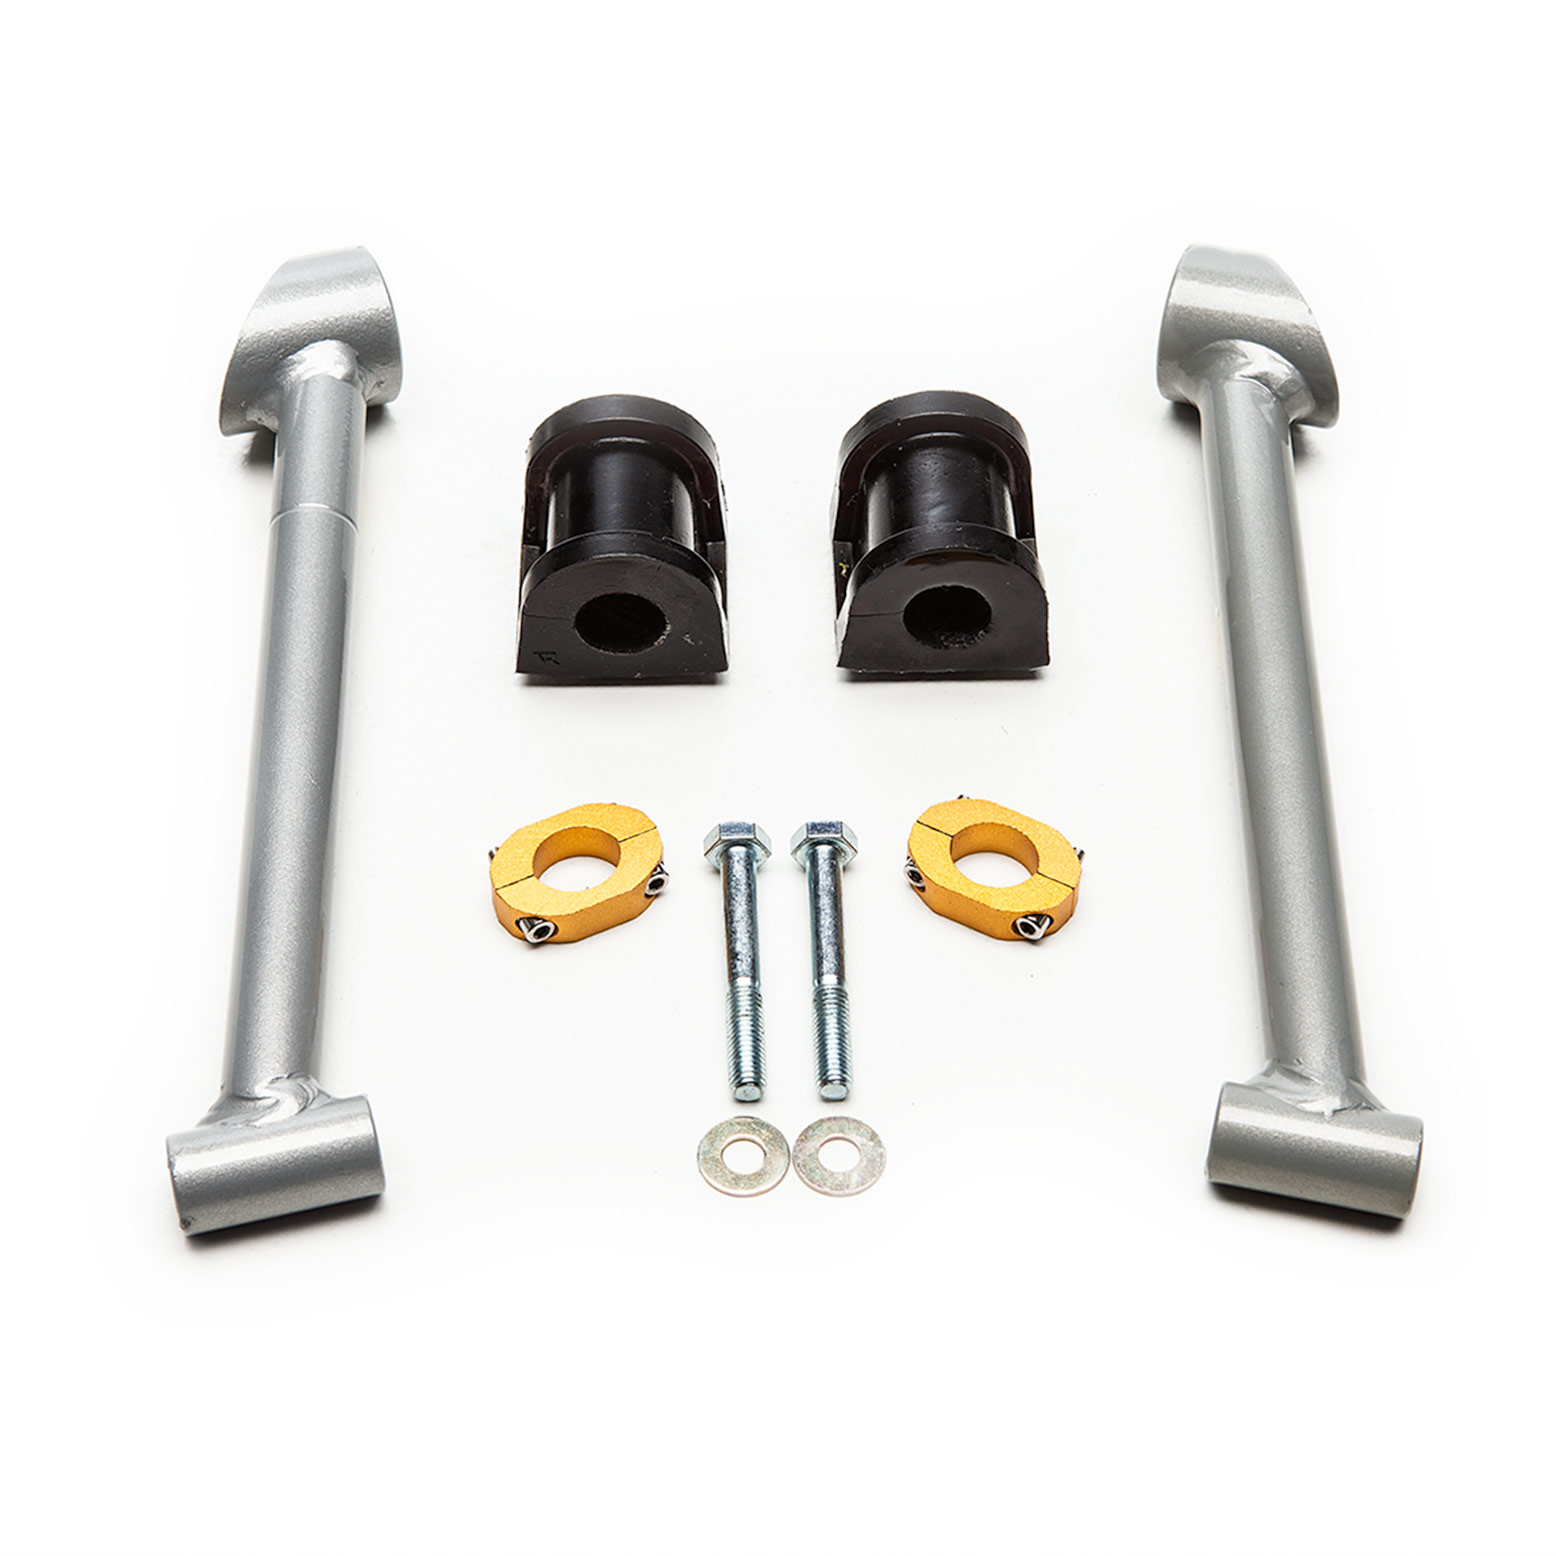 Whiteline Rear Sway Bar 20mm Adjustable Subaru WRX/STI 2008-2019